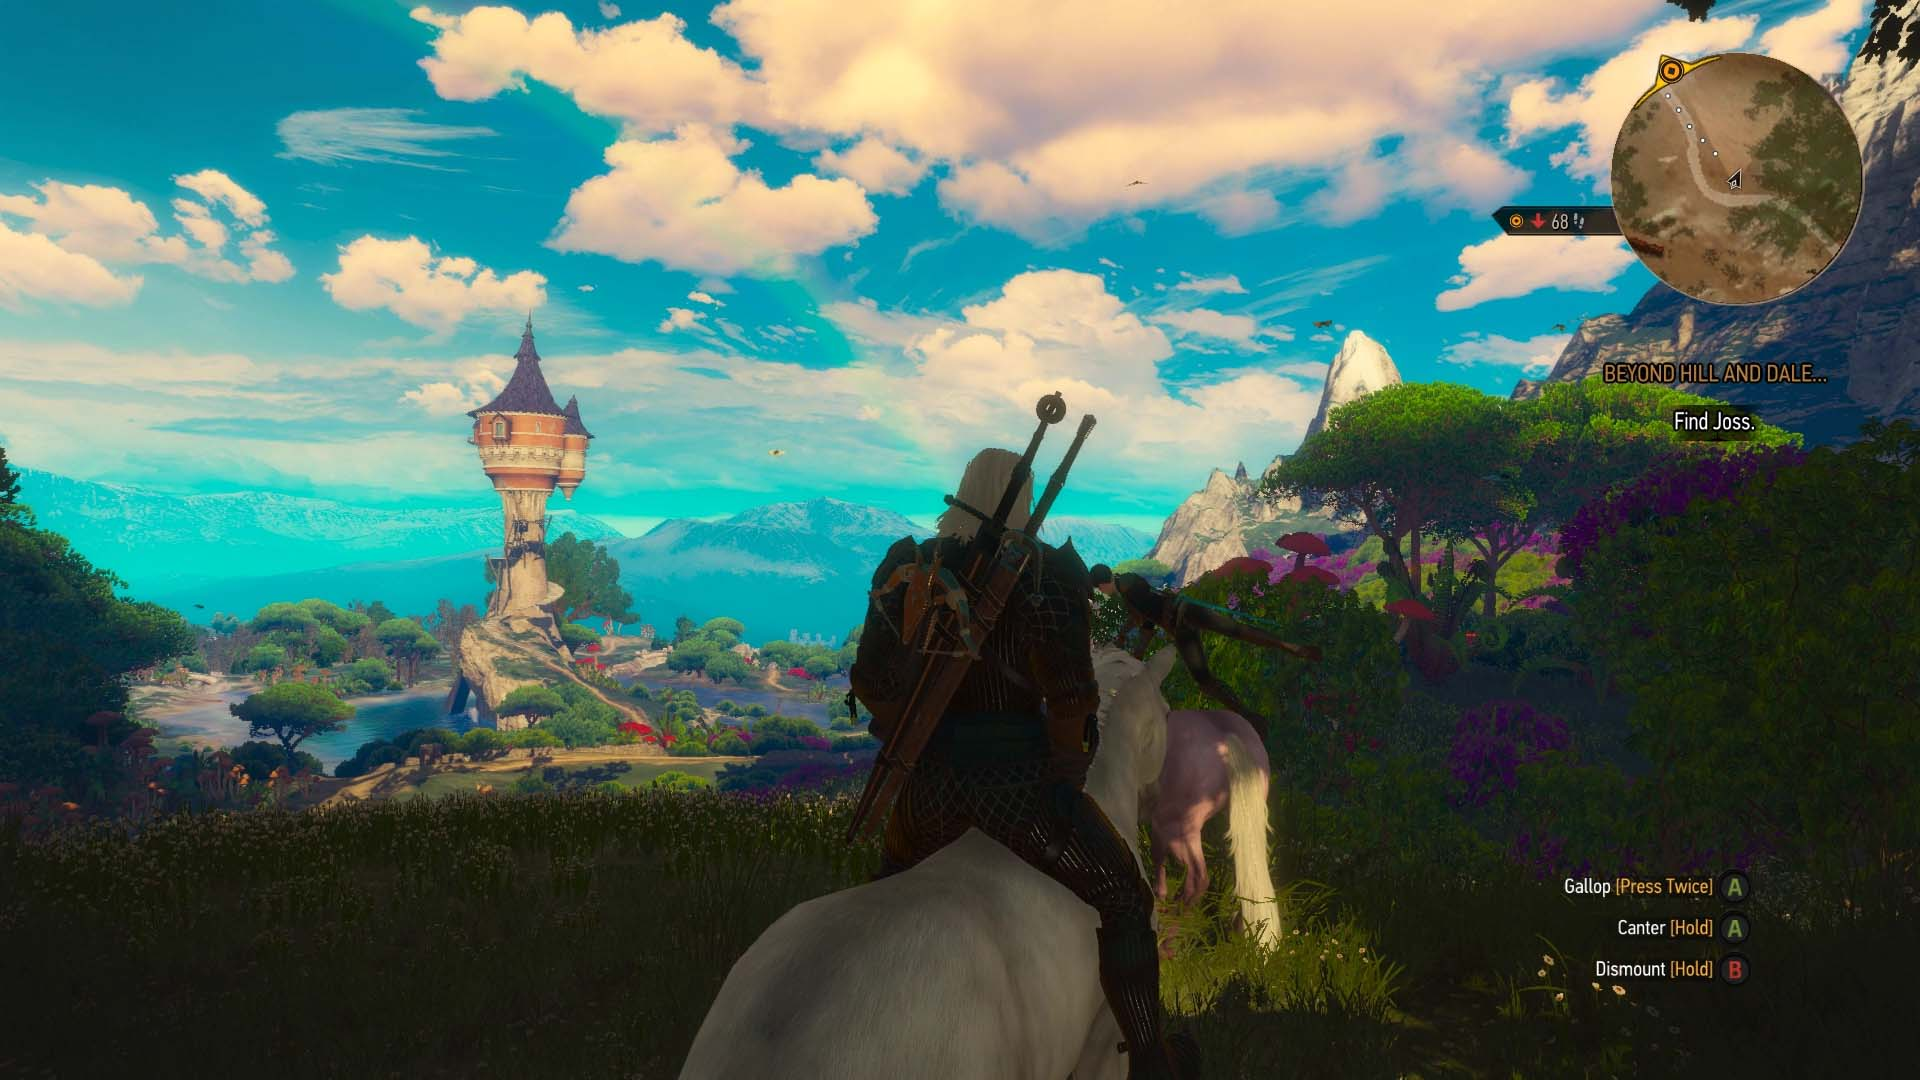 The witcher 3 blood and wine walkthrough beyond hill and dale youll meet pixies and wolves along the way they arent too difficult to take care of find the boy who cried wolf after killing the wolves solutioingenieria Gallery